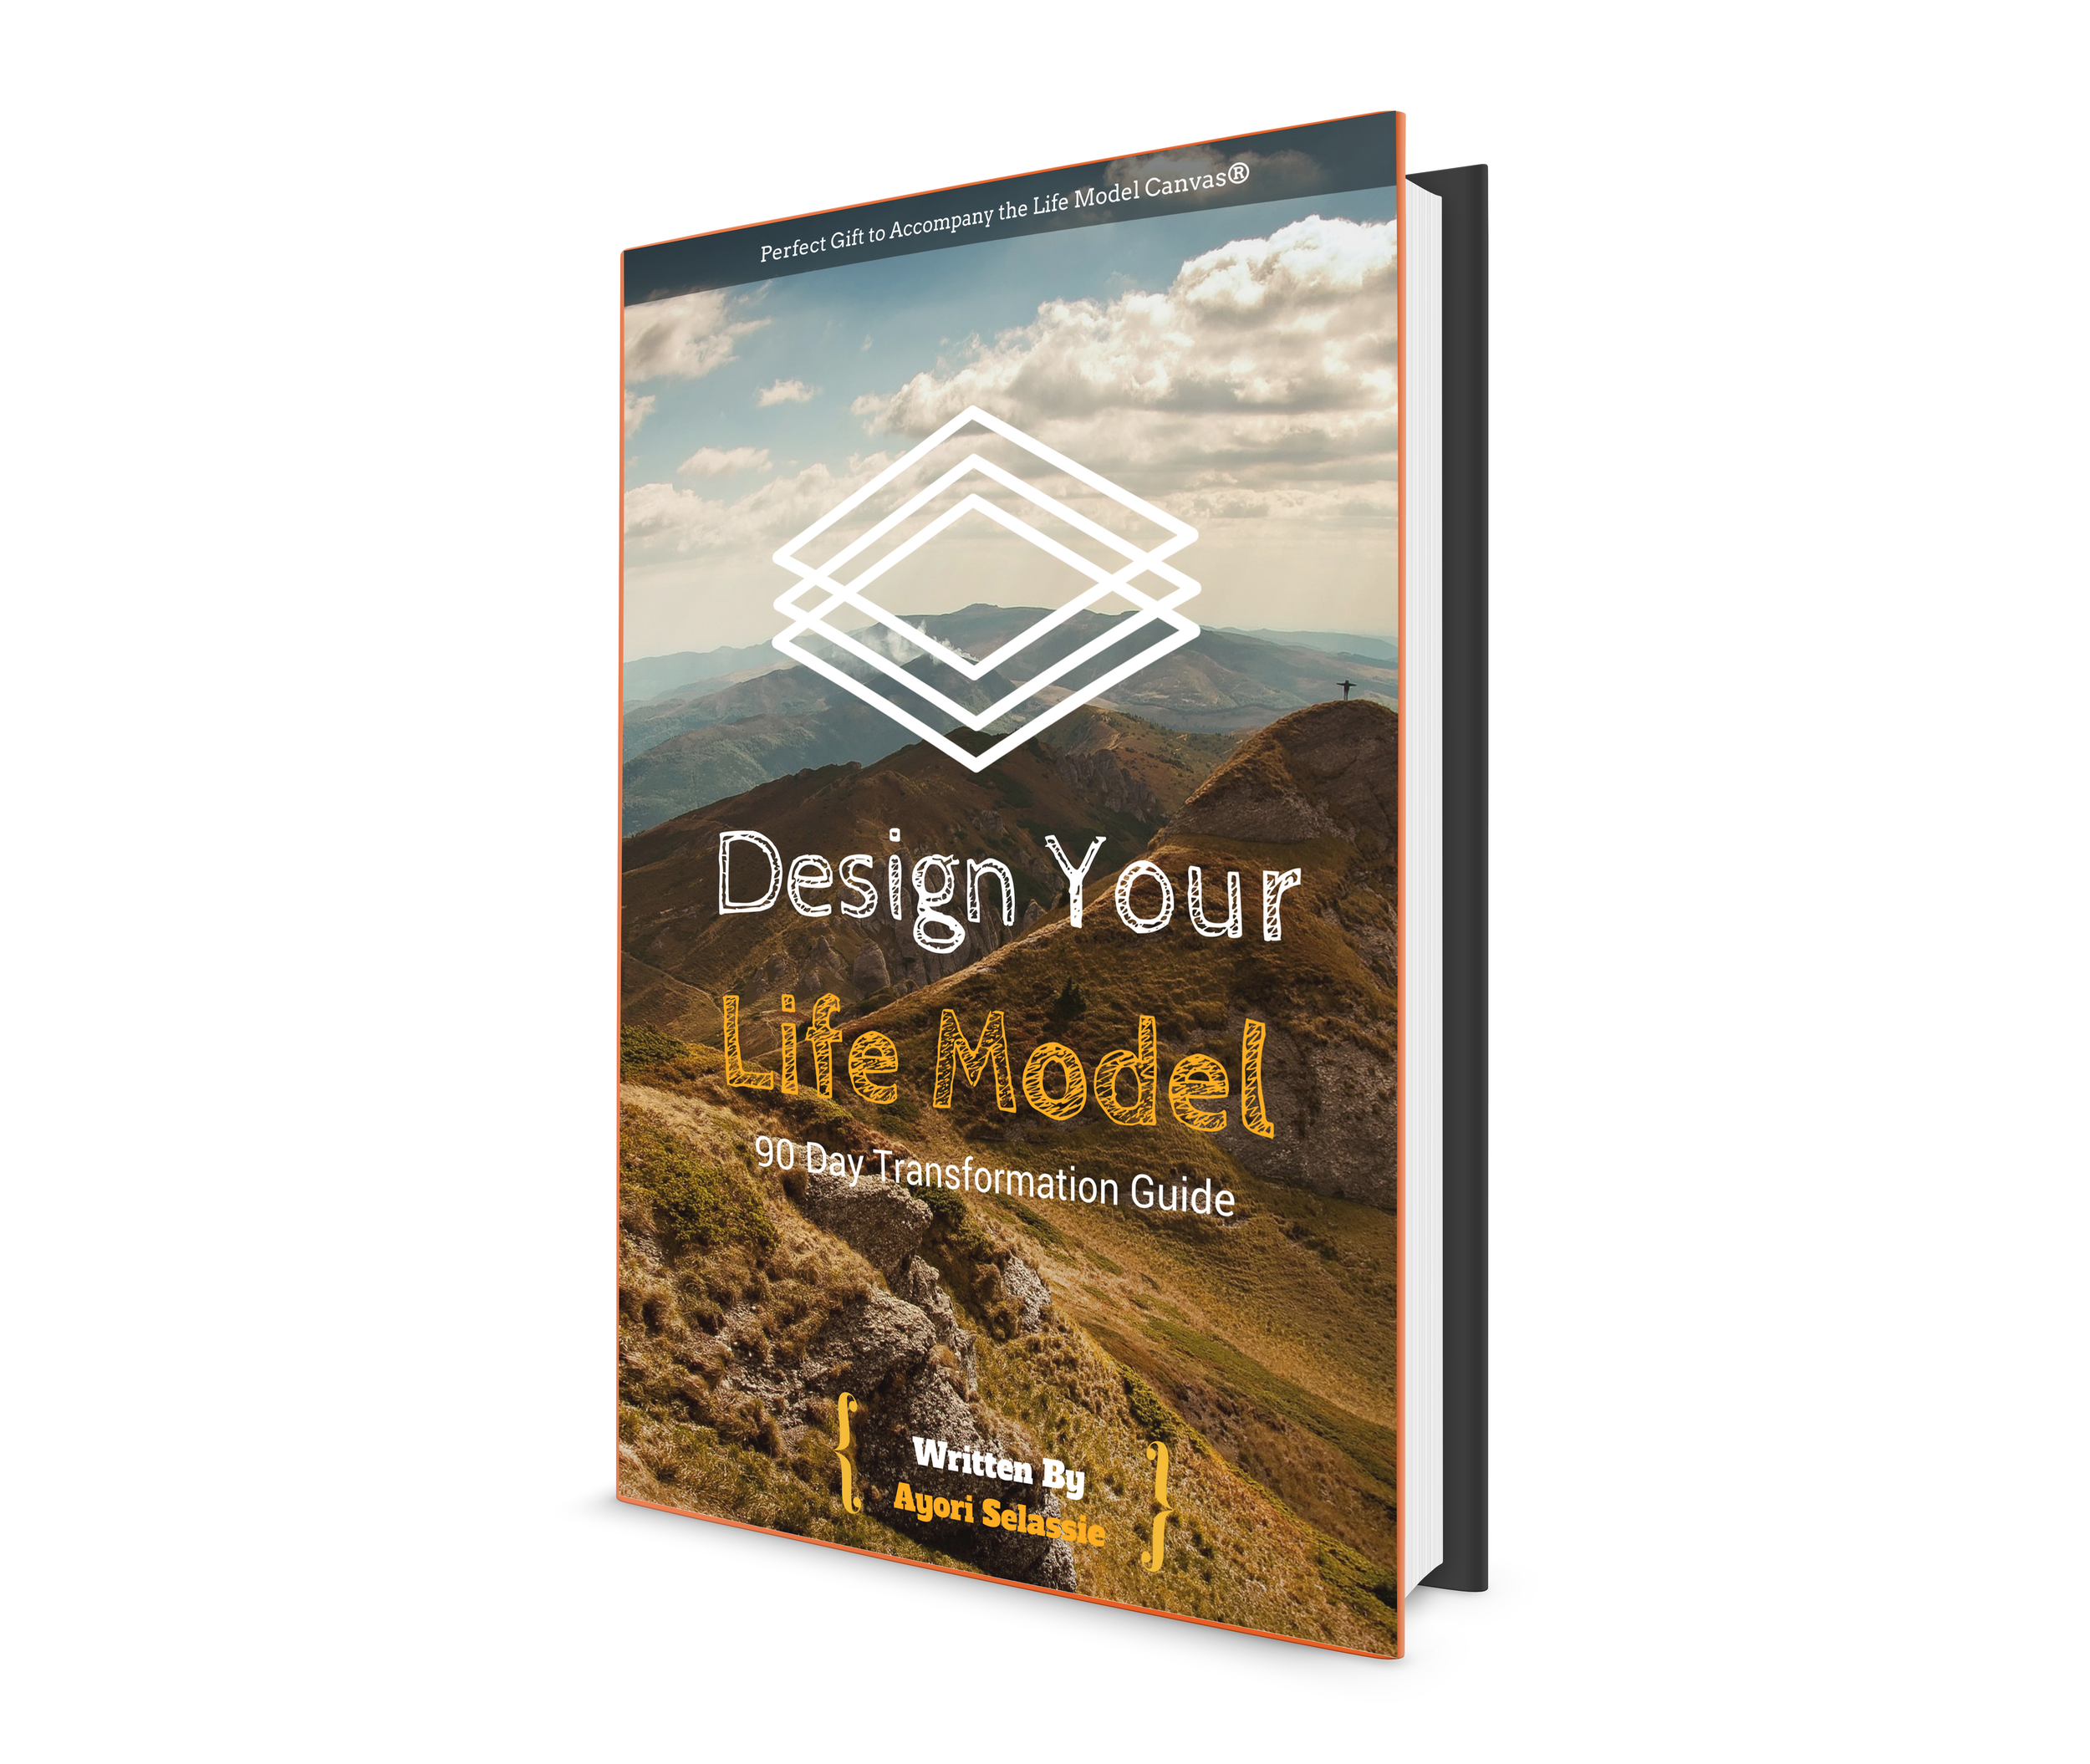 Preorder Yours Now - Design Your Life Model is the perfect guide to transform your life starting in just 90 days! Use this book to walk step by step through the Life Model Design process to gain clarity of vision and growth with the Life Model  and incorporate Work Life Integrity into your life today. Whether you have purchased a Life Model Canvas®️, or downloaded the digital version, this book presents valuable exercises to help you leverage 10 frameworks to identify your values, goals and moonshot to unlock your motivations and transform your behavior.